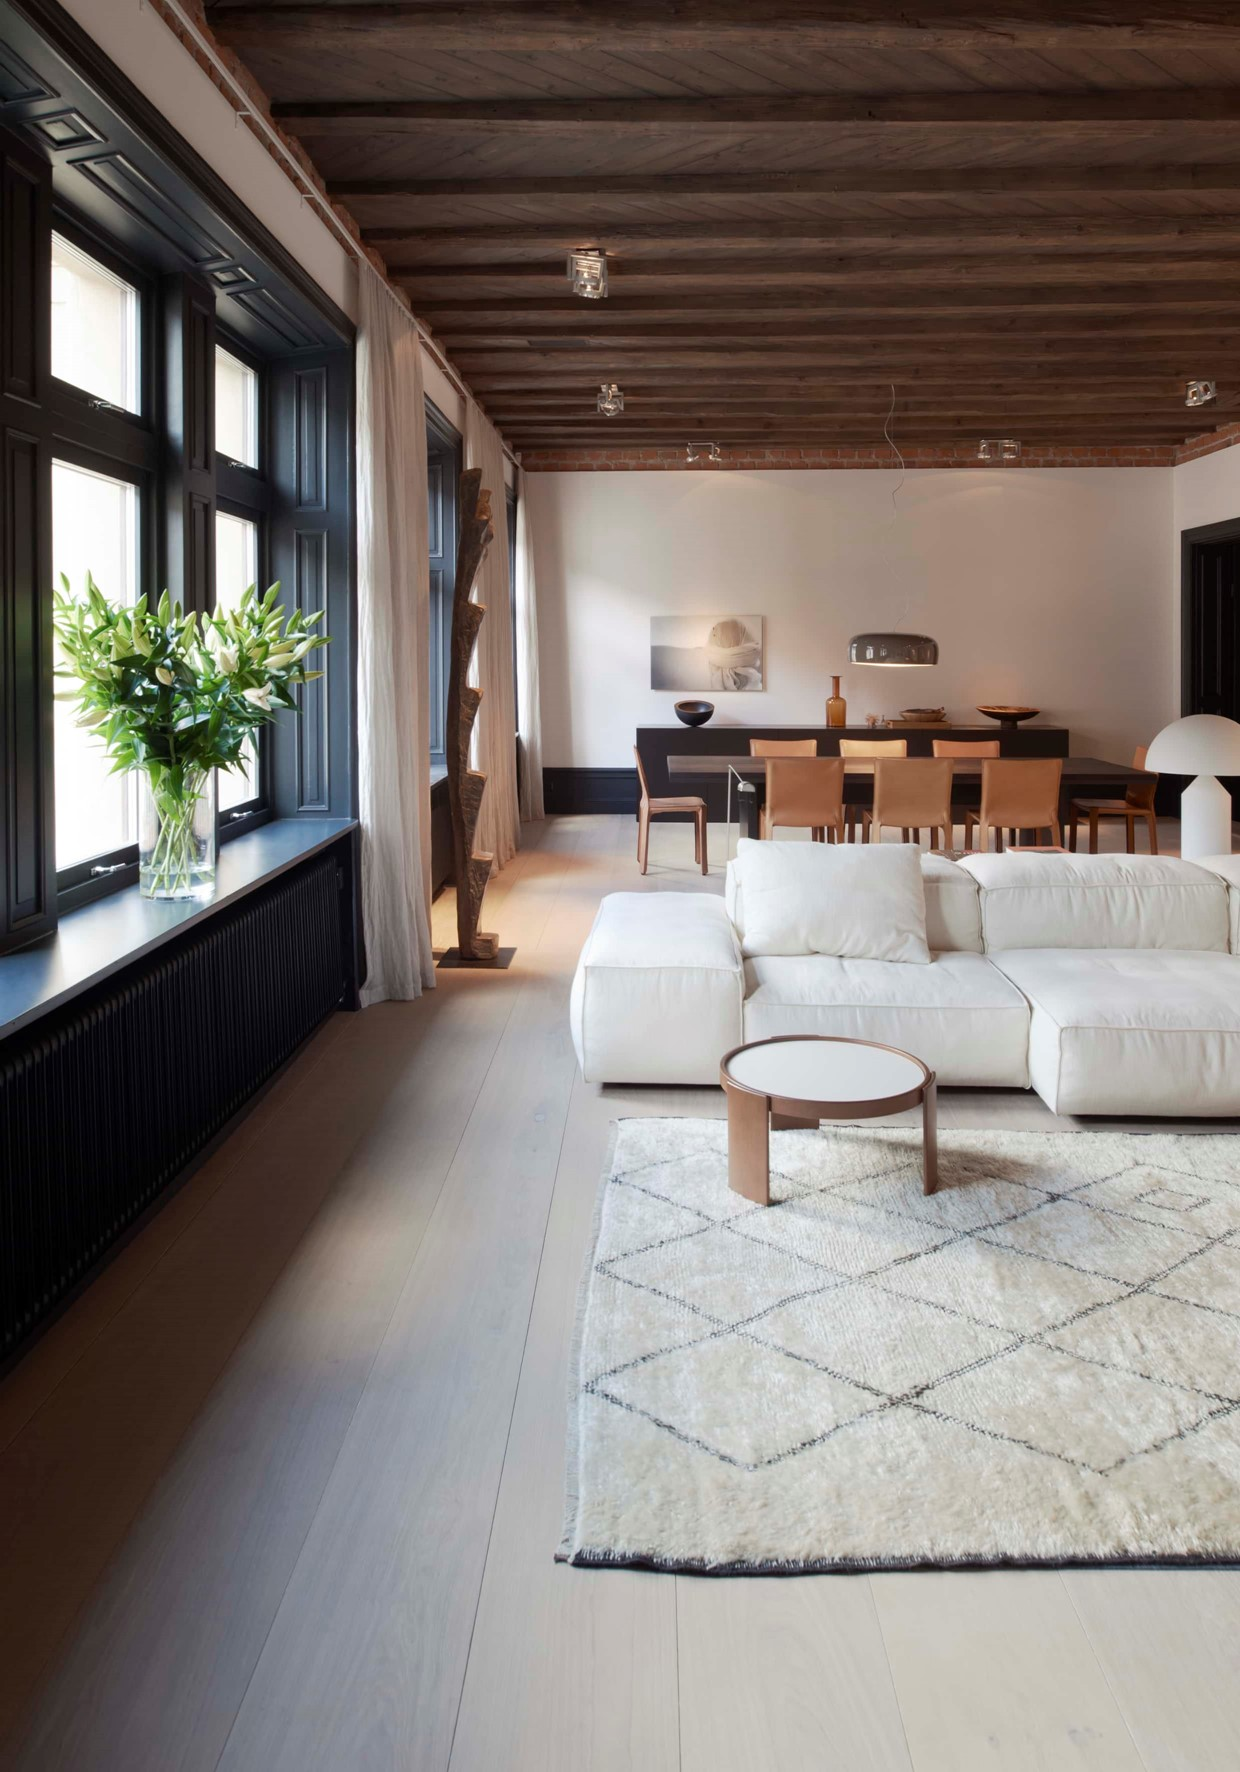 oak-wooden-floor_grandoak_white-oil_stockholm-apartment_living-room_dinesen_02.jpg